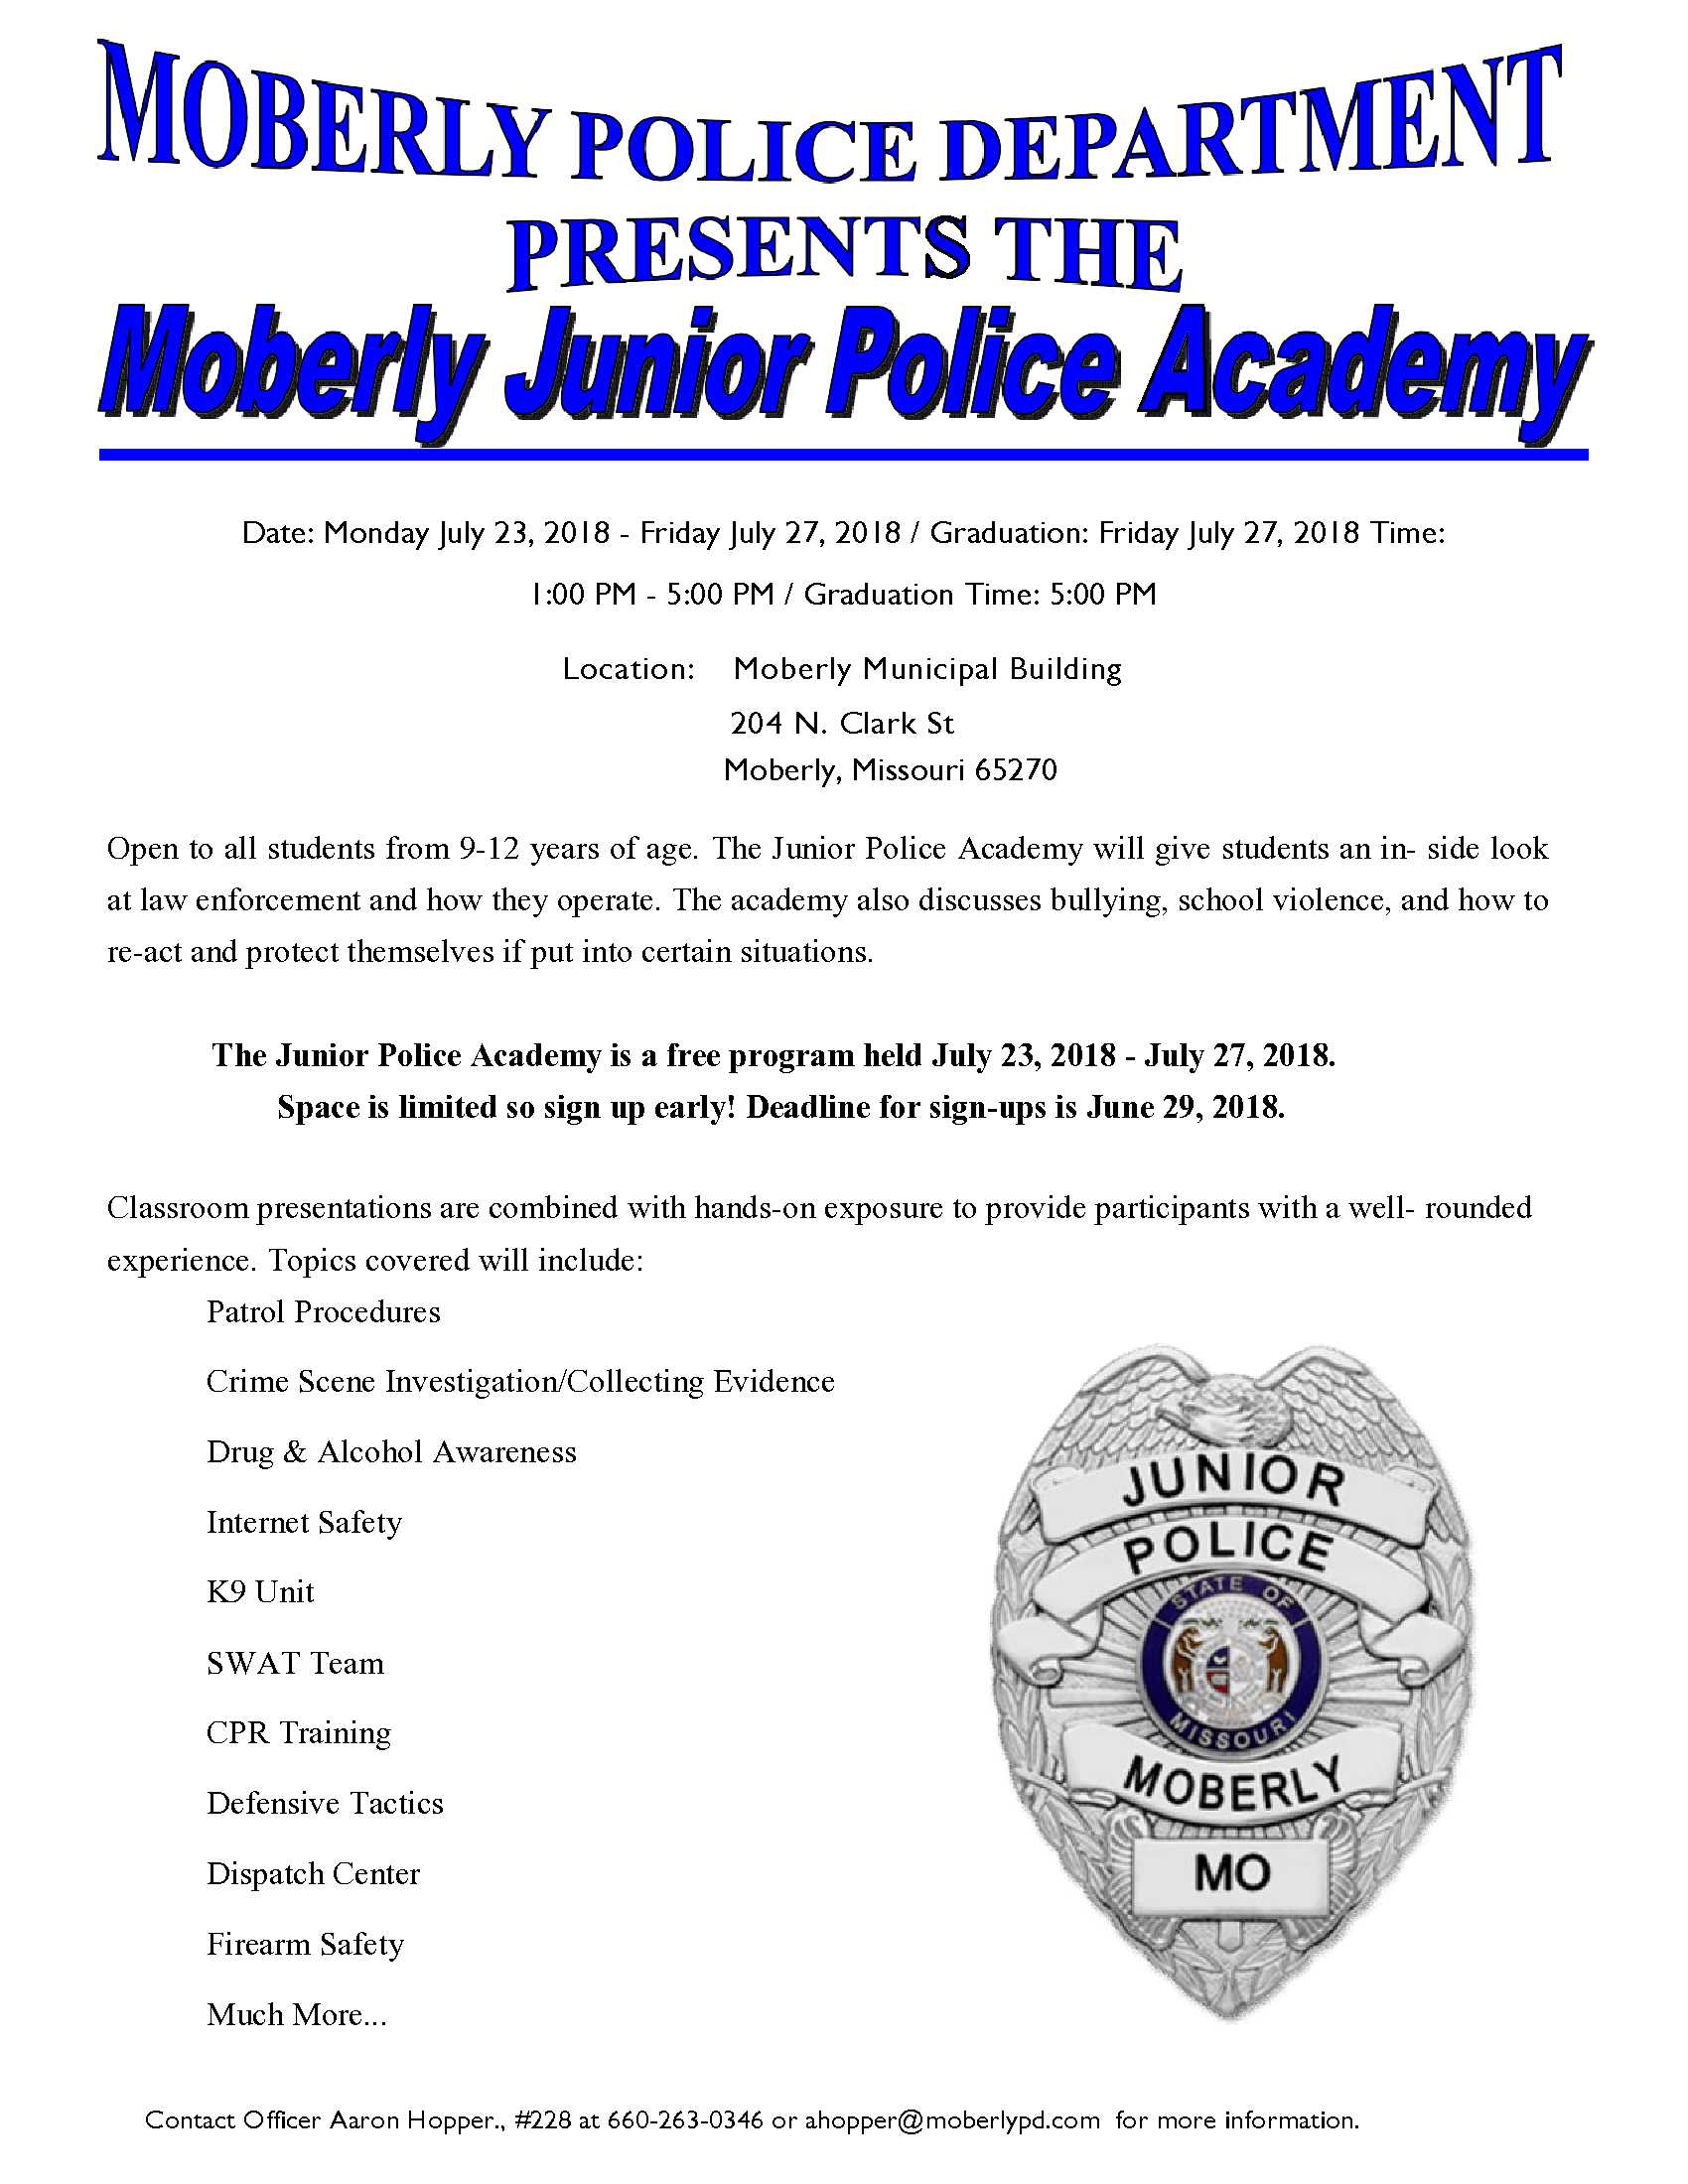 2018 Jr Police Academy Information Flyer